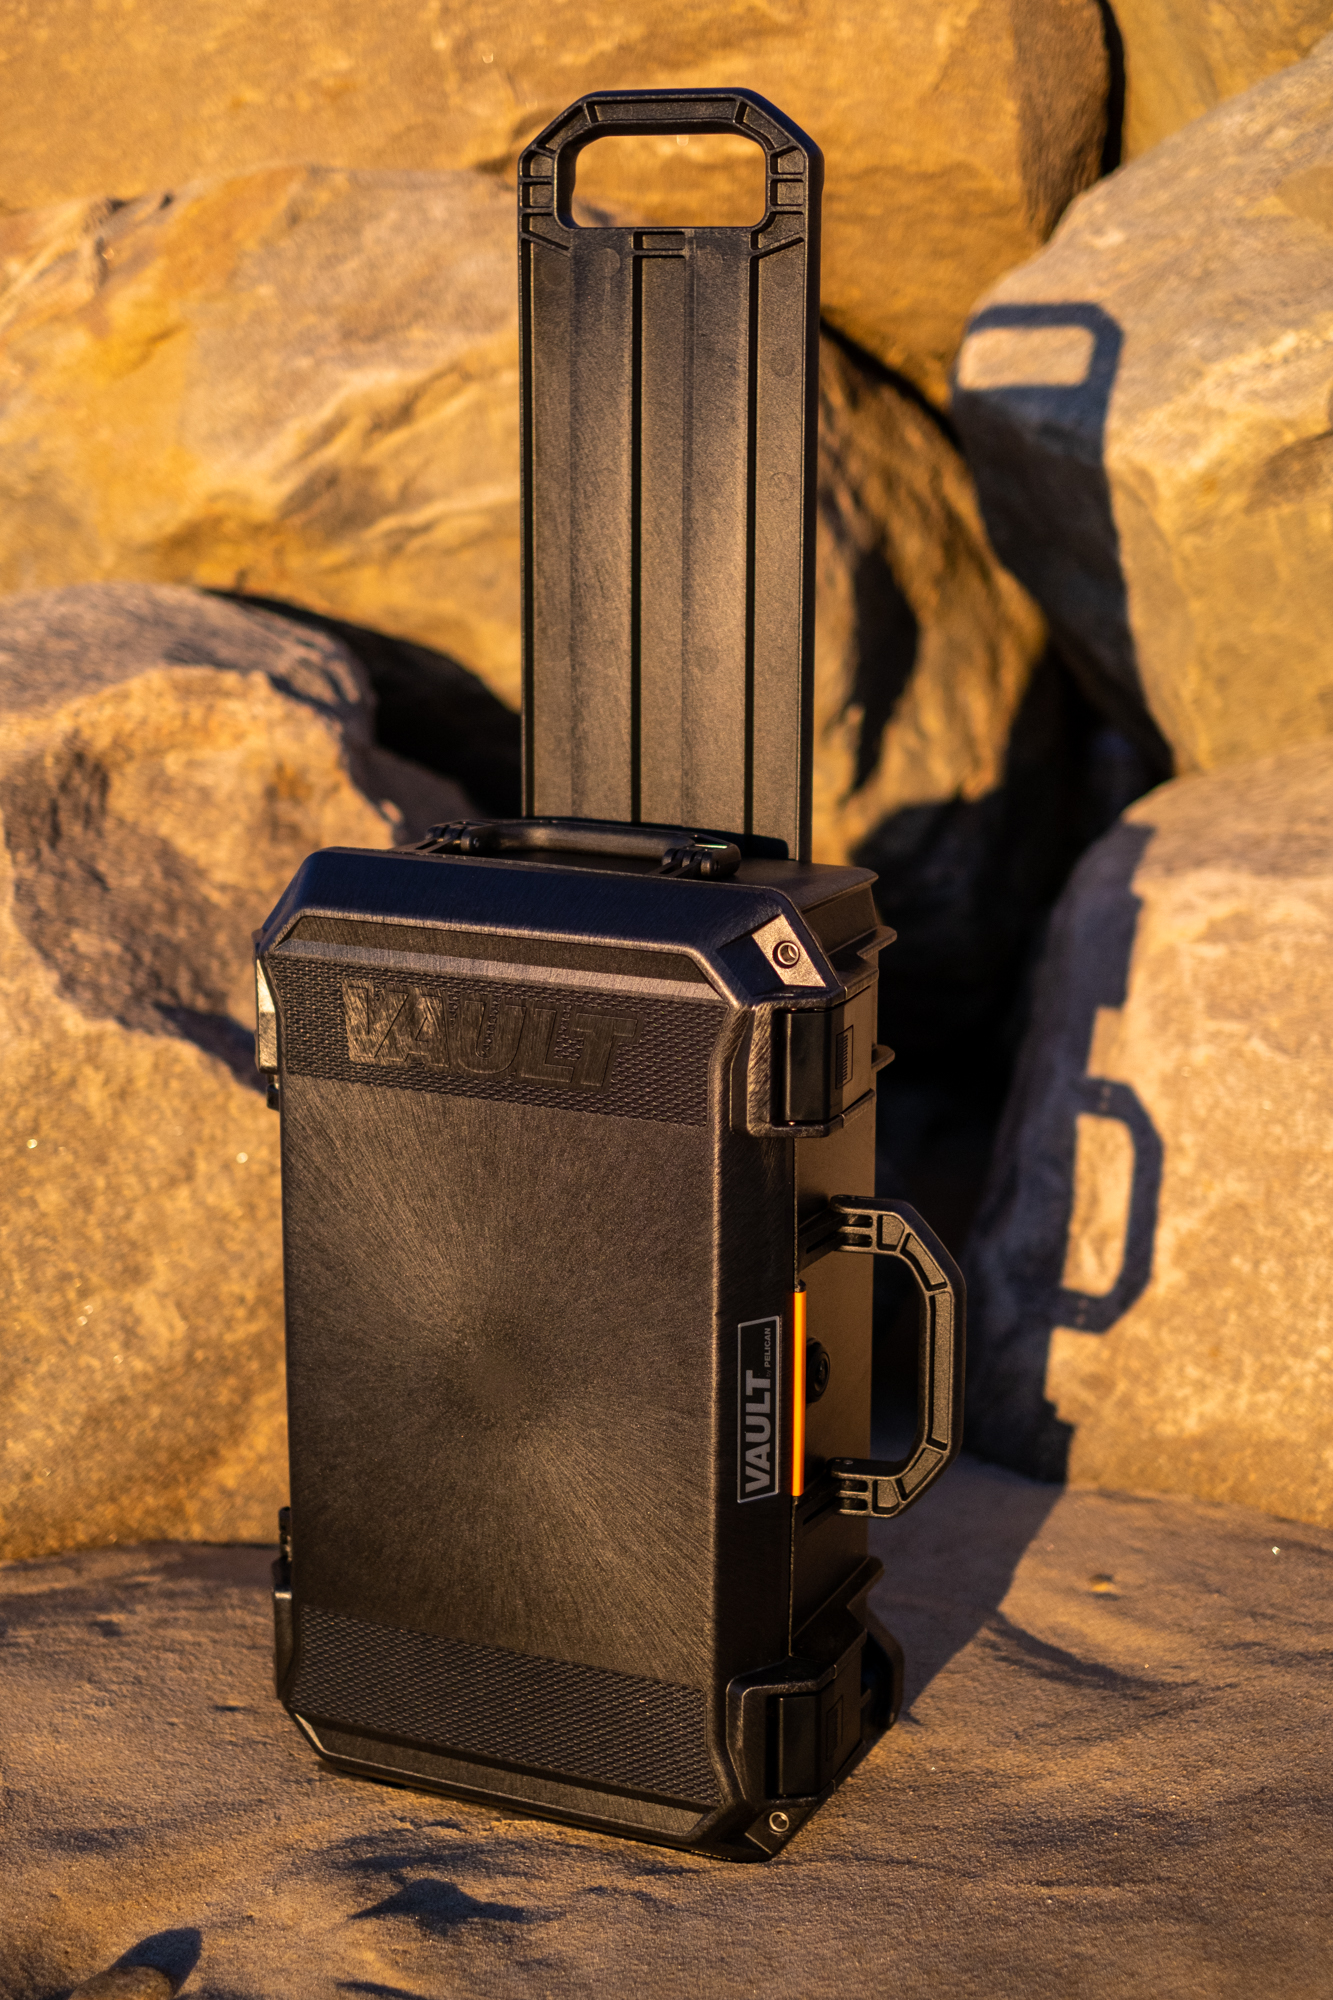 The Pelican V525 carry-on handle deployed